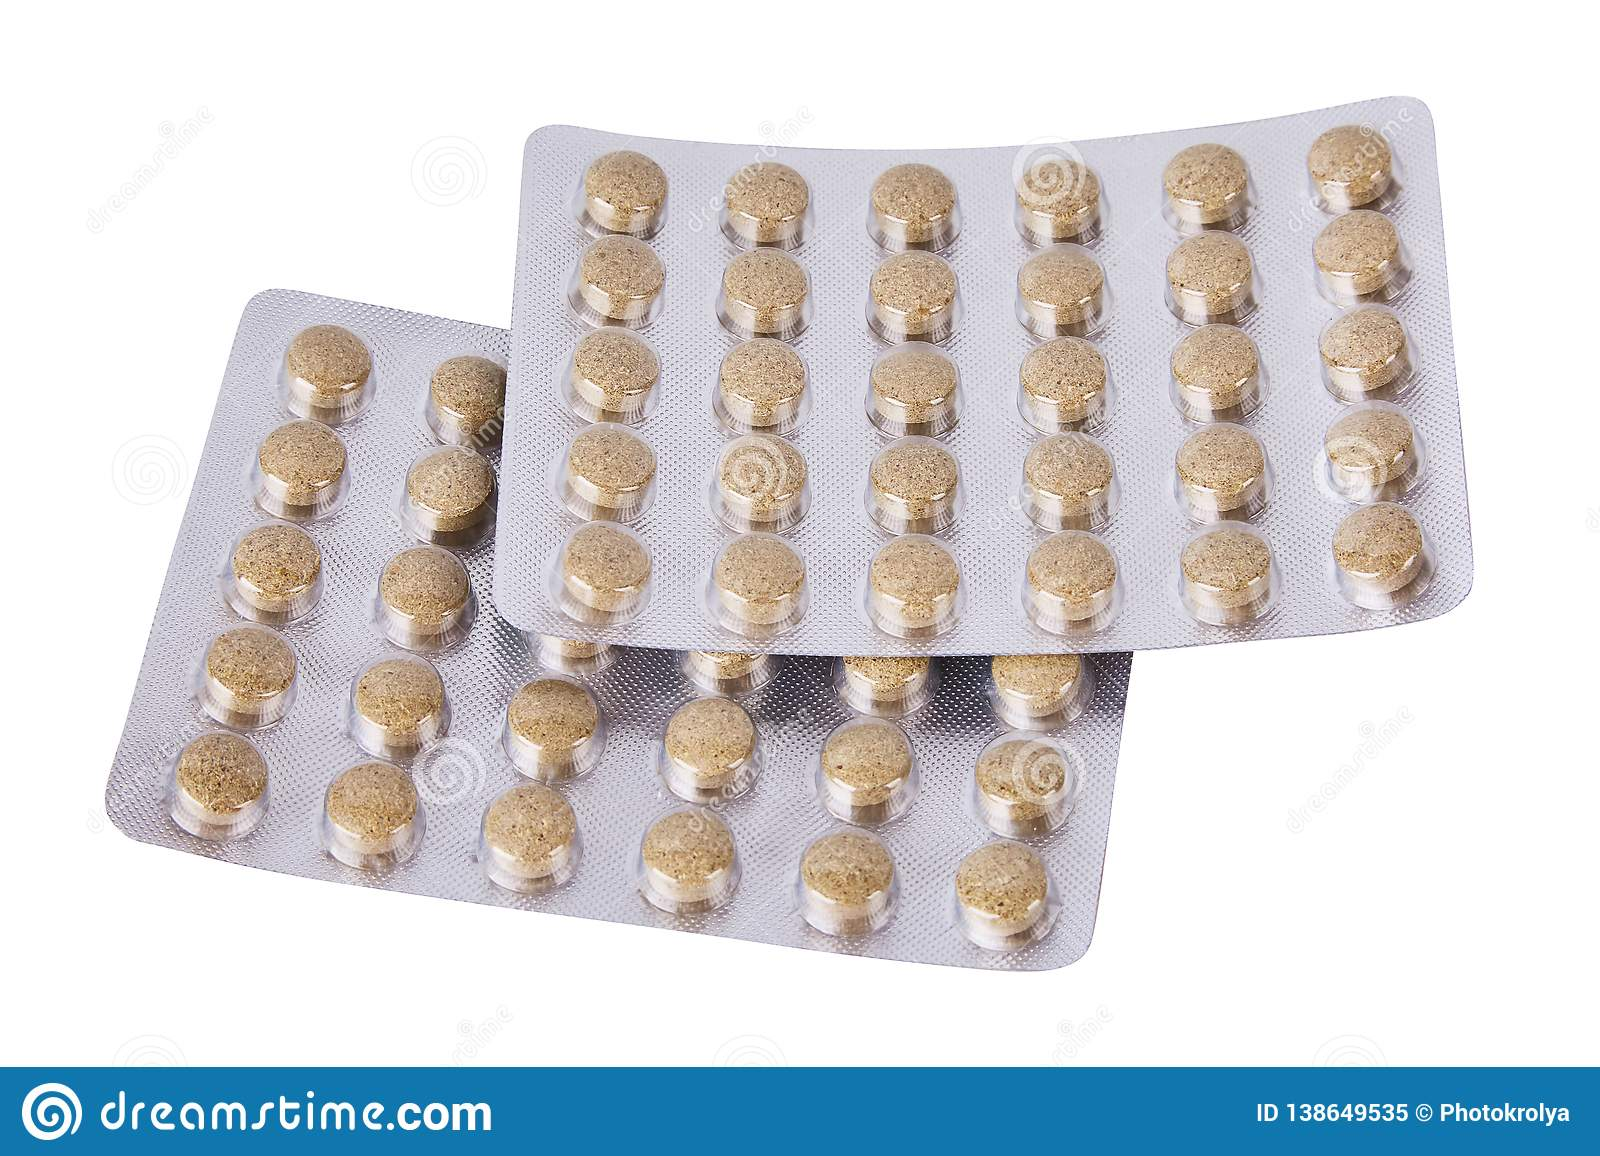 Medicine herbal pills or tablets in silver blisters on white background.